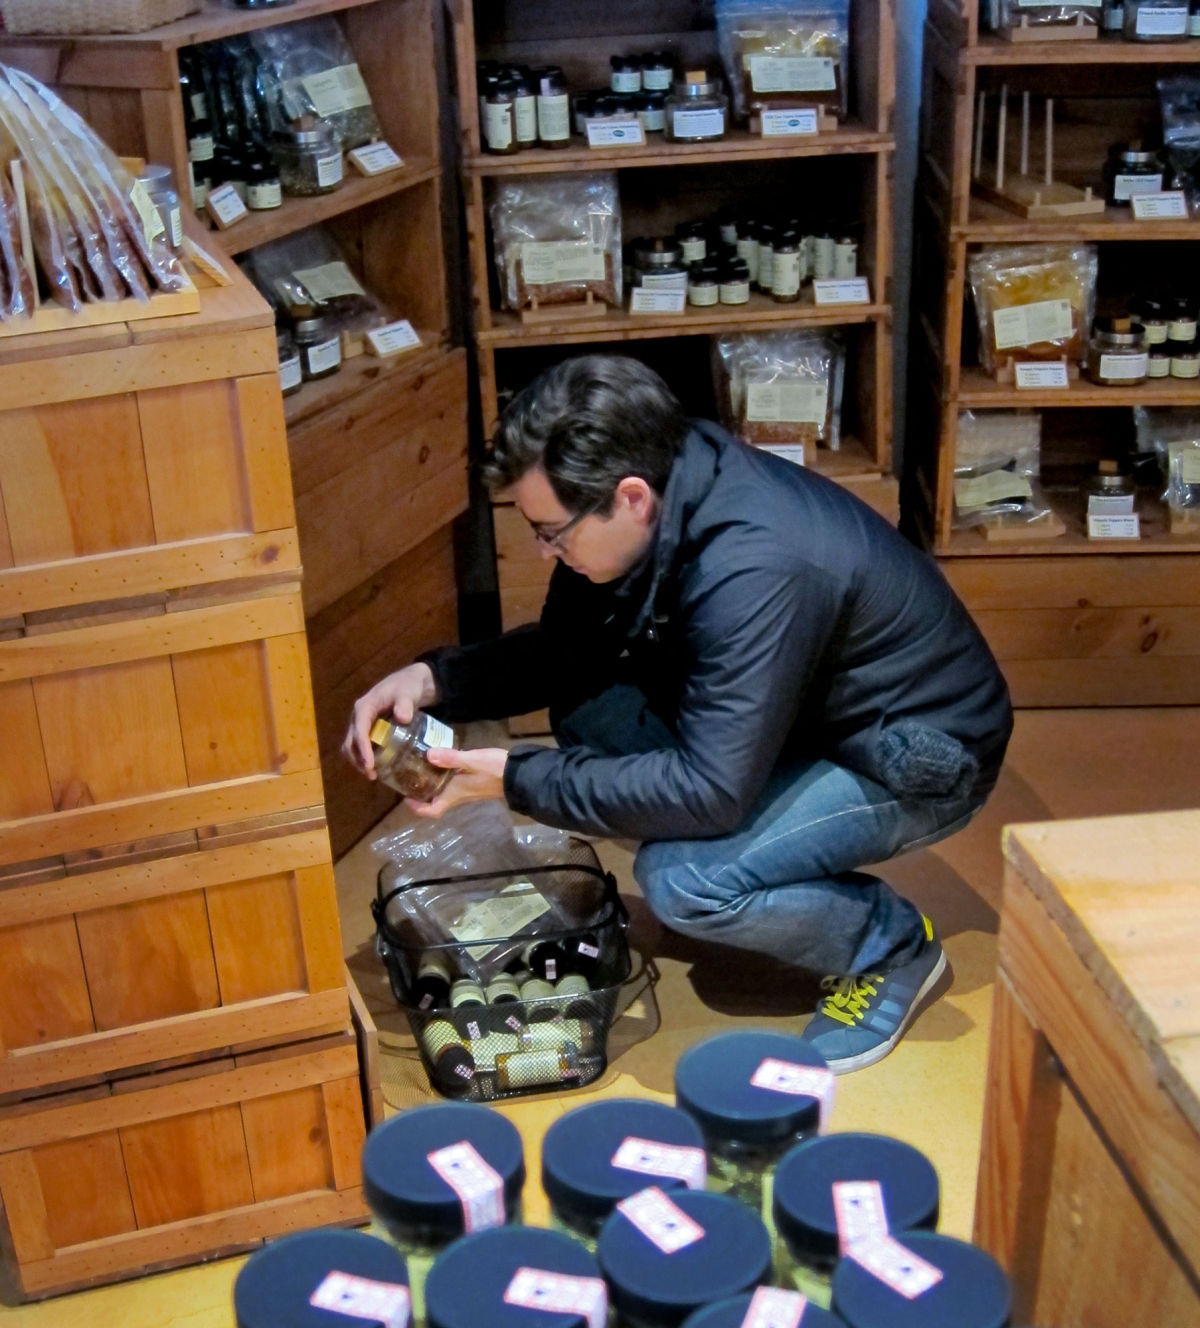 Eric looking at Spices